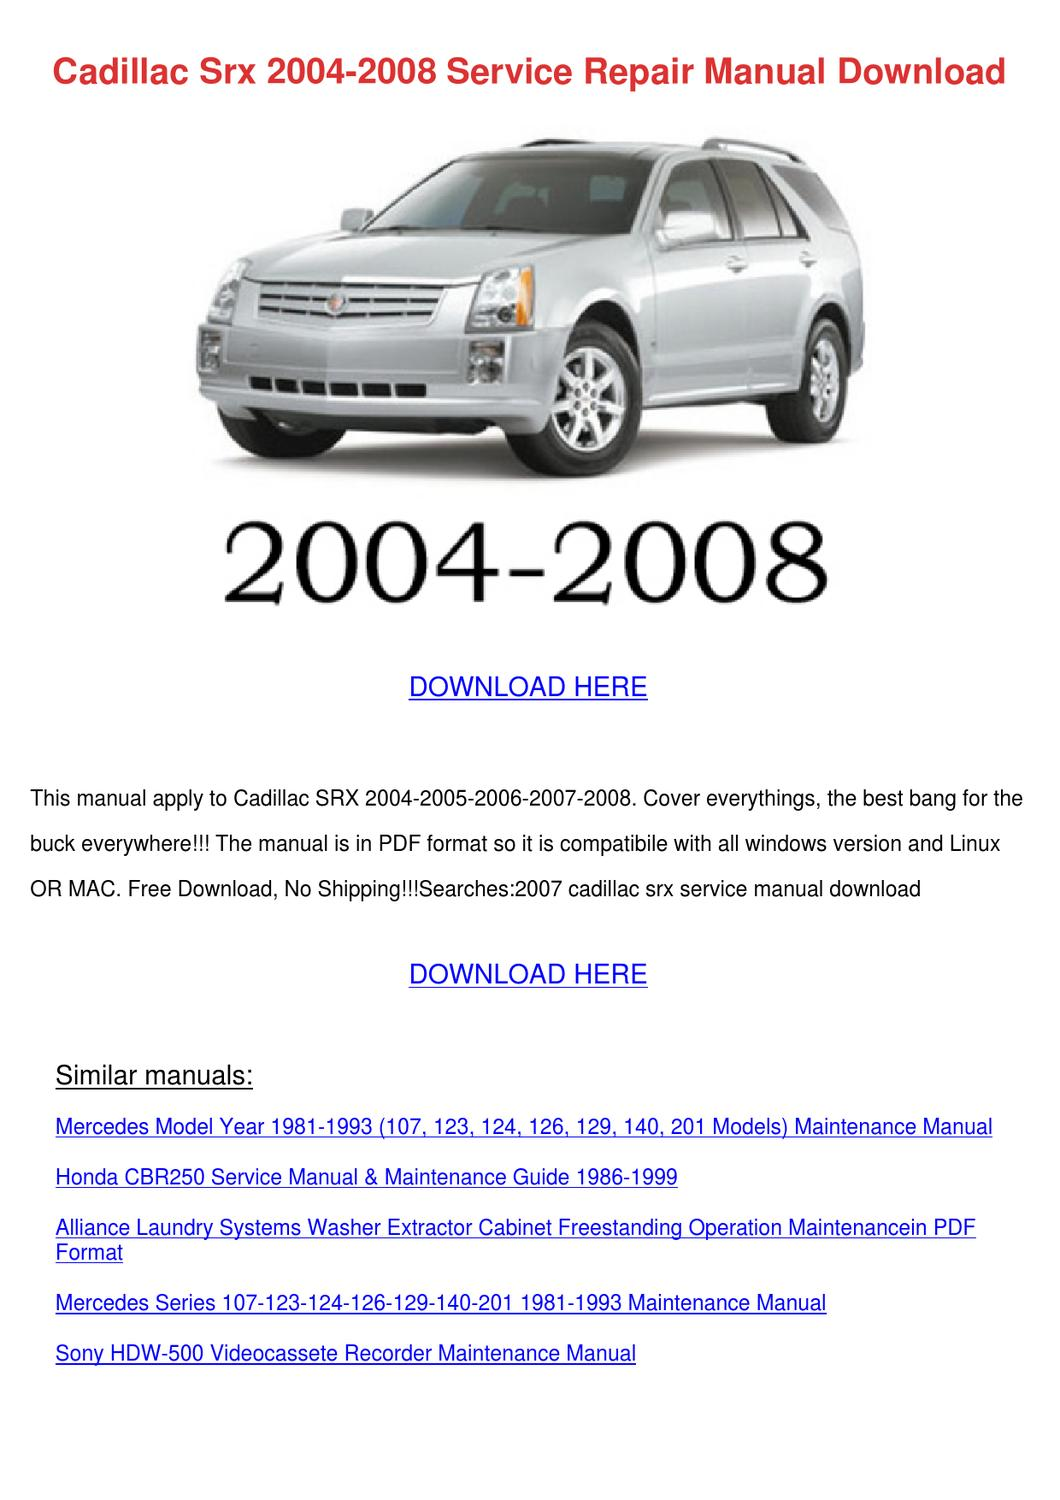 Cadillac Srx 2004 2008 Service Repair Manual by Johnette Pamphile - issuu